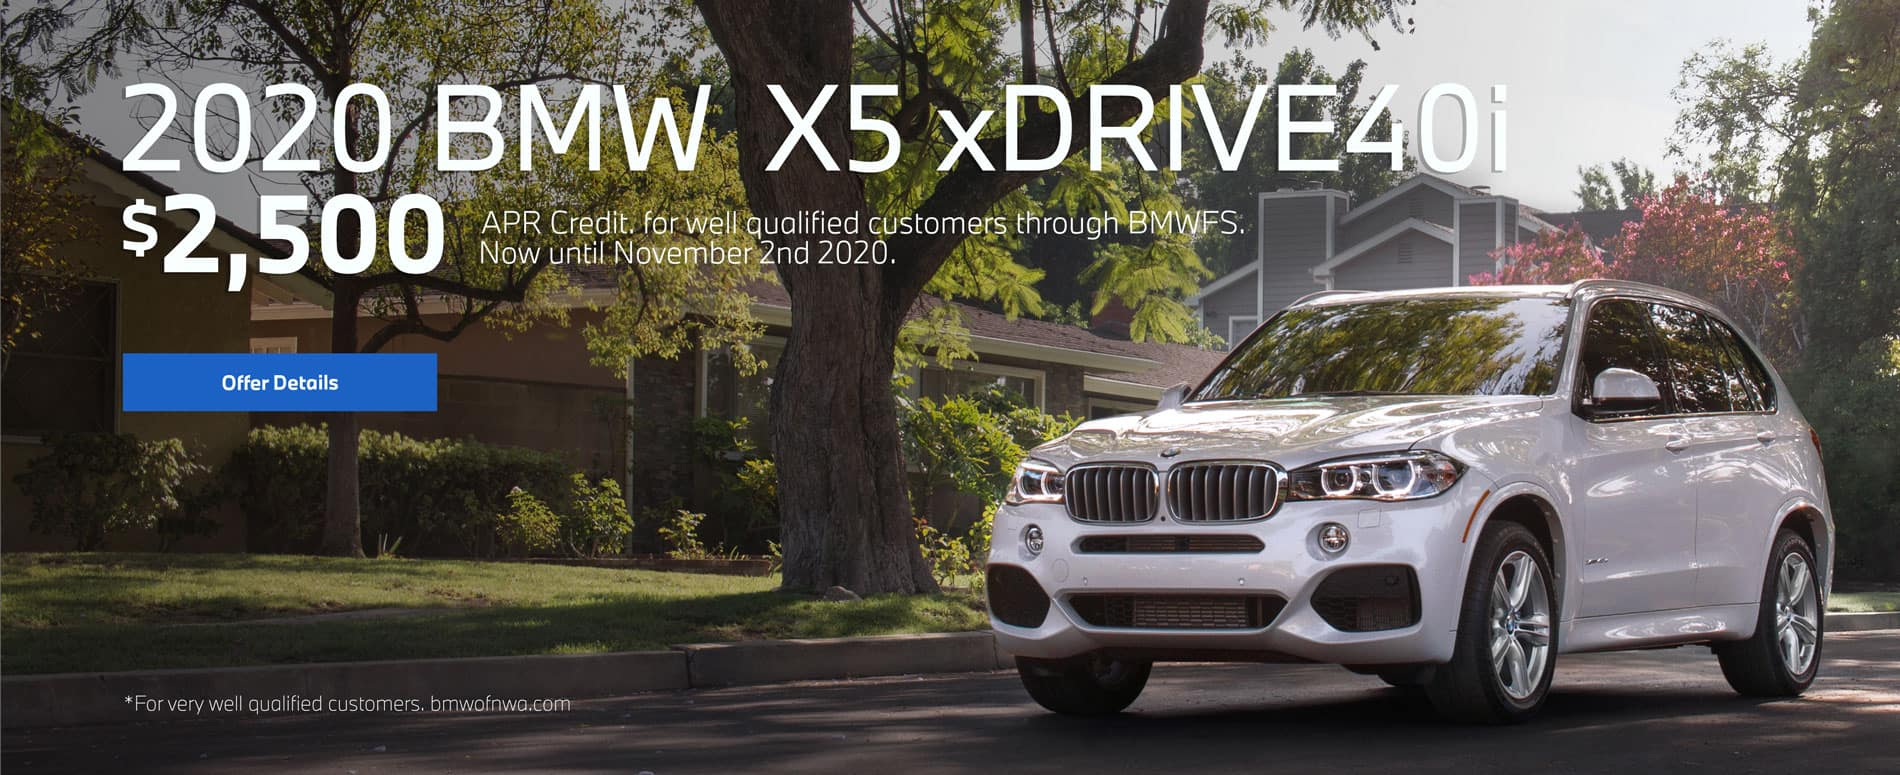 X5-xDrive40i $2,500 apr credit, for well qualified customers.